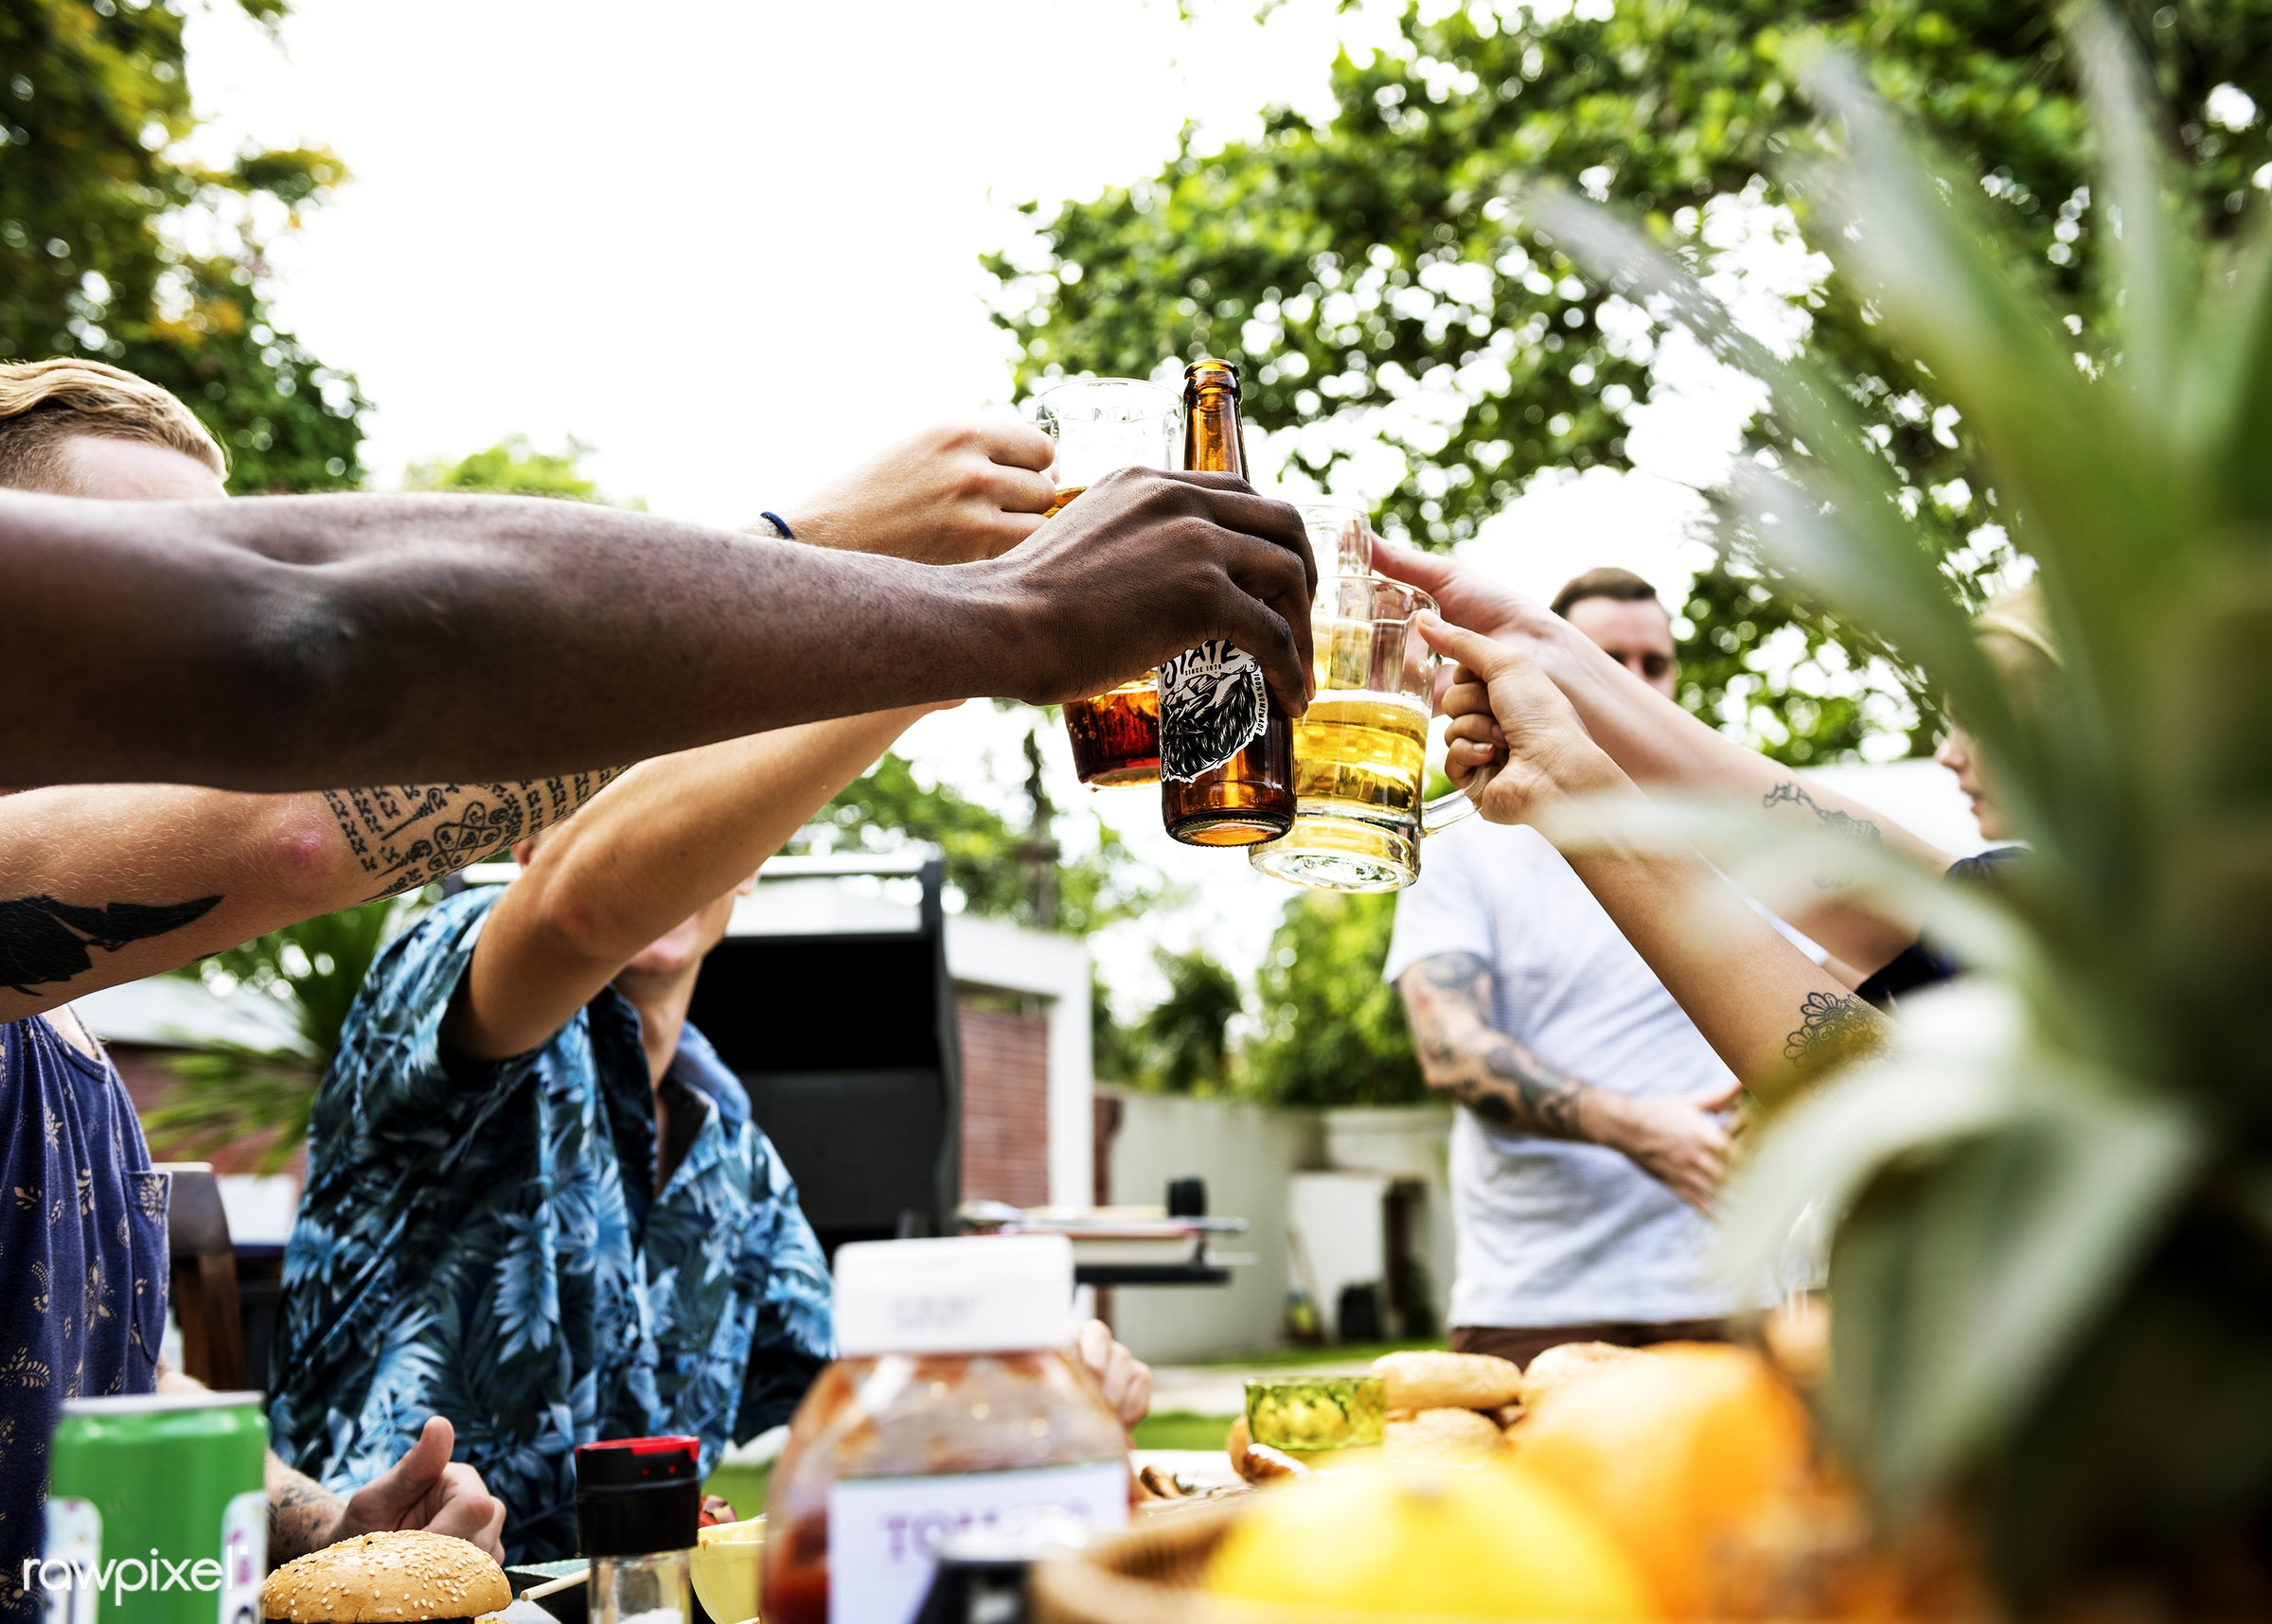 A diverse group of friends celebrating and drinking beers together in the summer time - activity, alcohol, beers, beverage,...